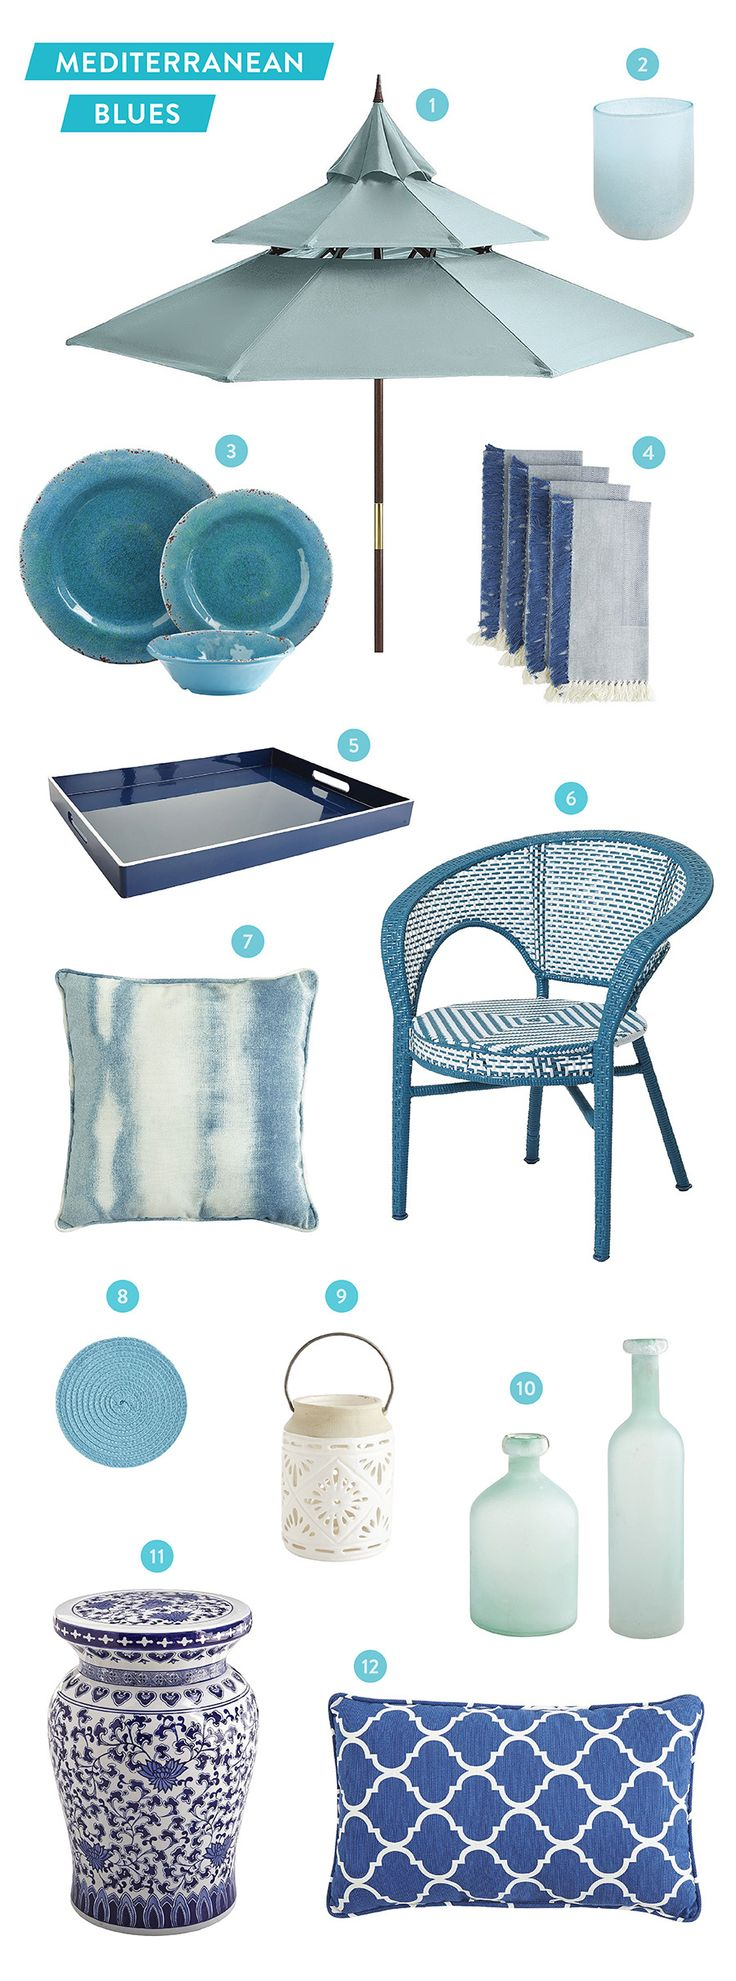 We're dreaming of Mediterranean Blues thanks to Pier 1: http://www.stylemepretty.com/living/2015/05/19/outdoor-inspiration-in-a-sea-of-blue-with-pier-1-imports/